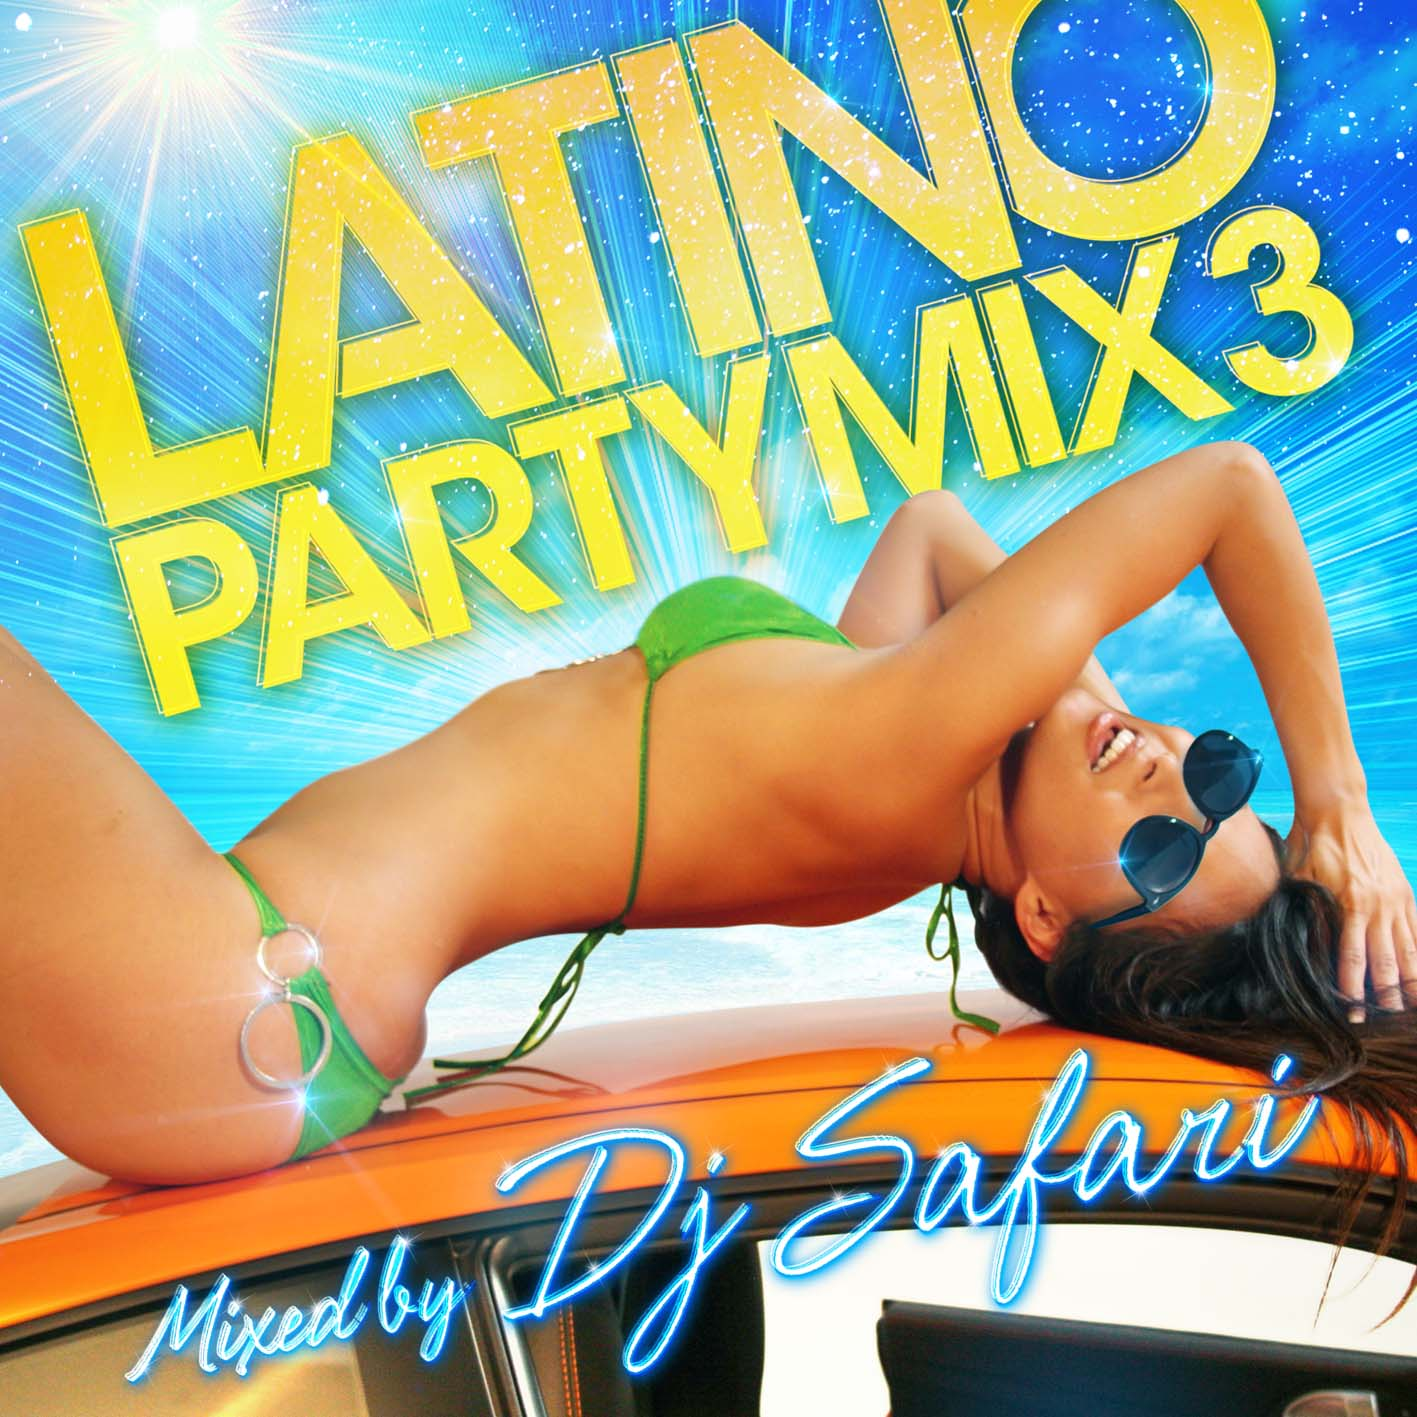 LATINO PARTY MIX 3 mixed by DJ SAFARI